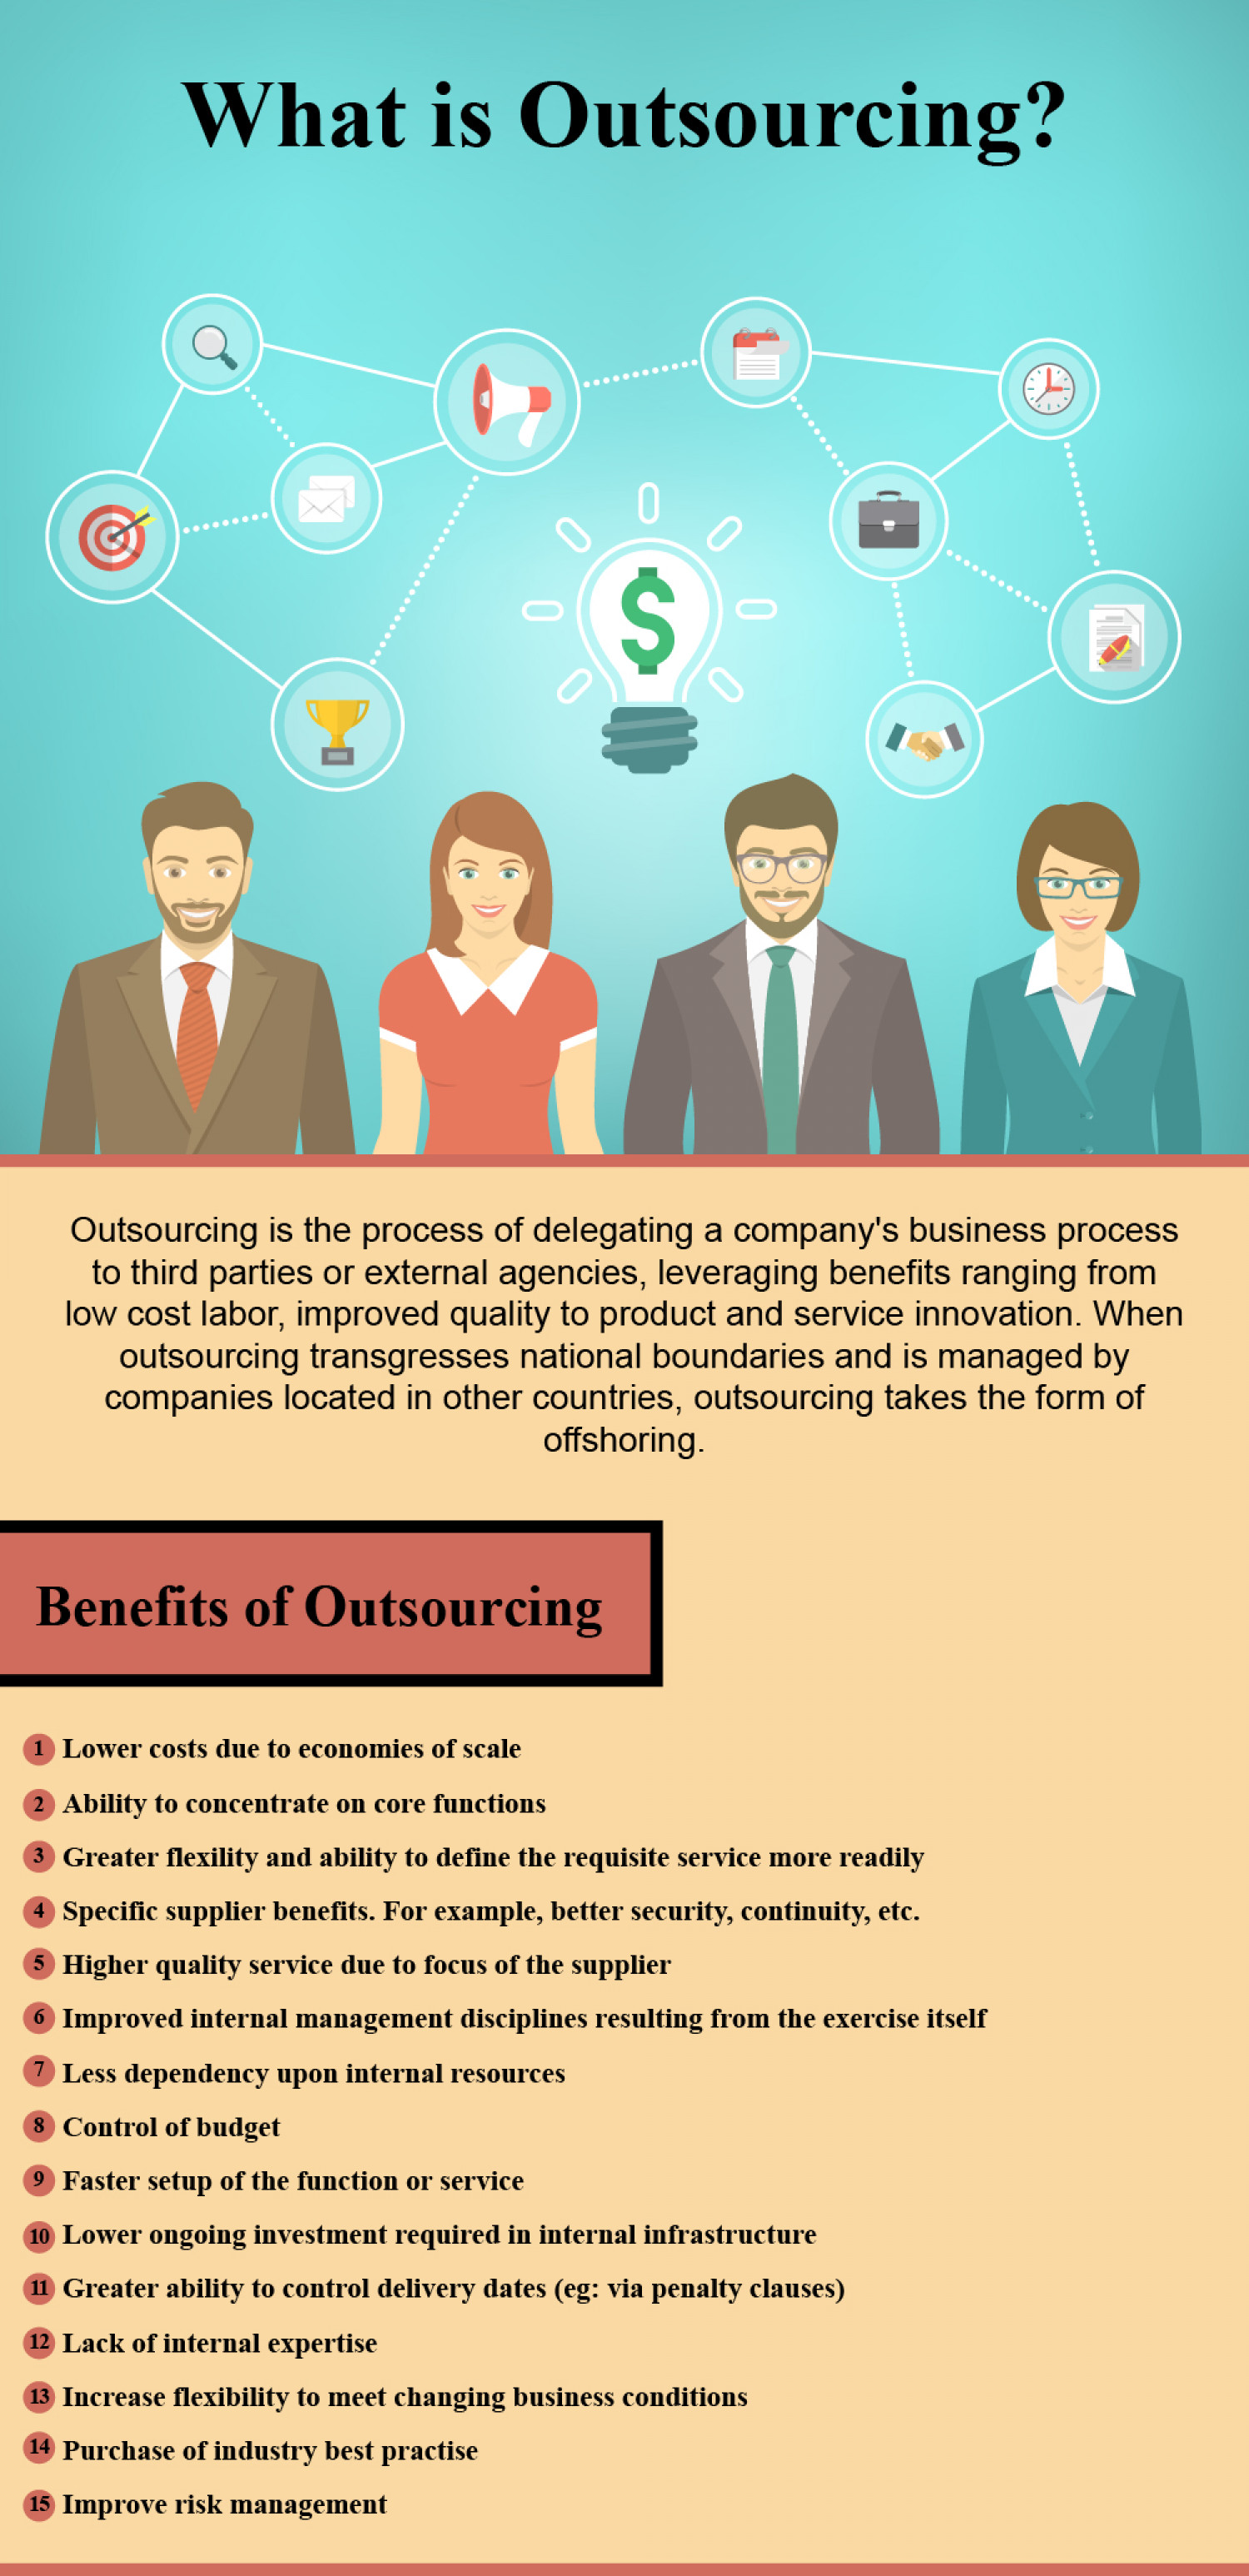 benefits of outsourcing Offshoring: offshoring, practice of outsourcing operations overseas, usually by companies from industrialized countries to less-developed countries.